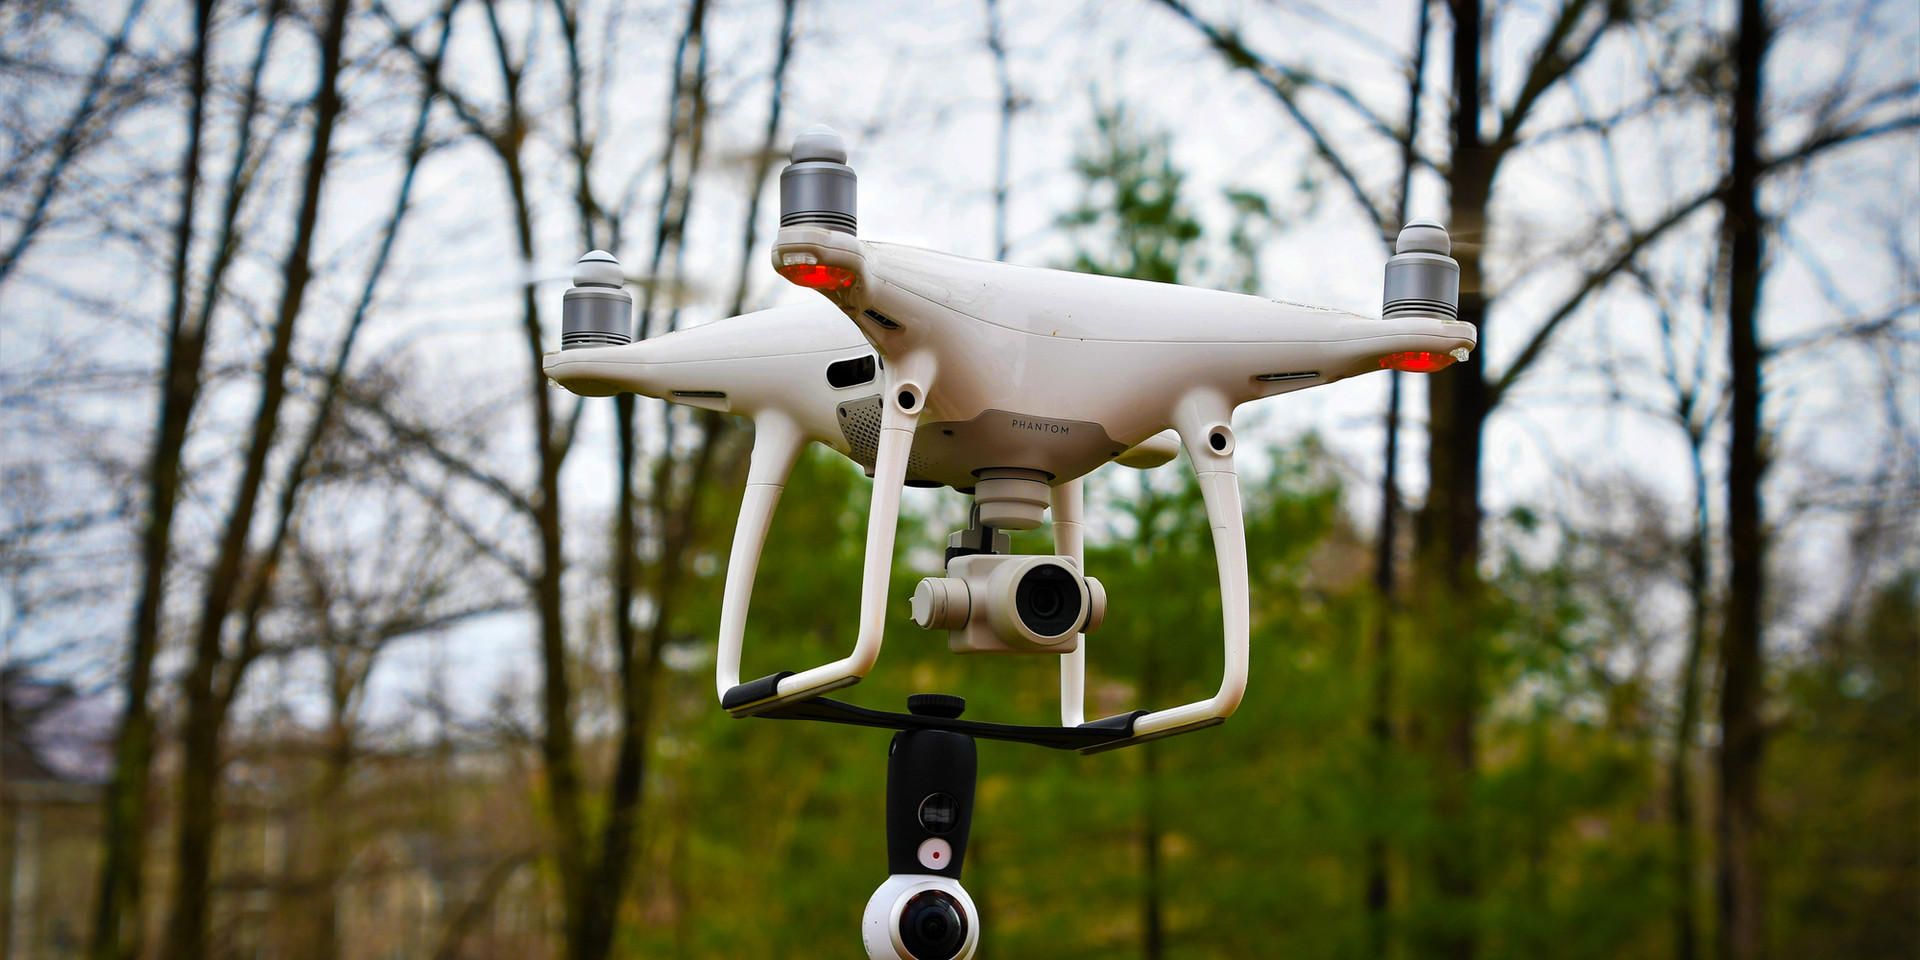 The 360 Drone